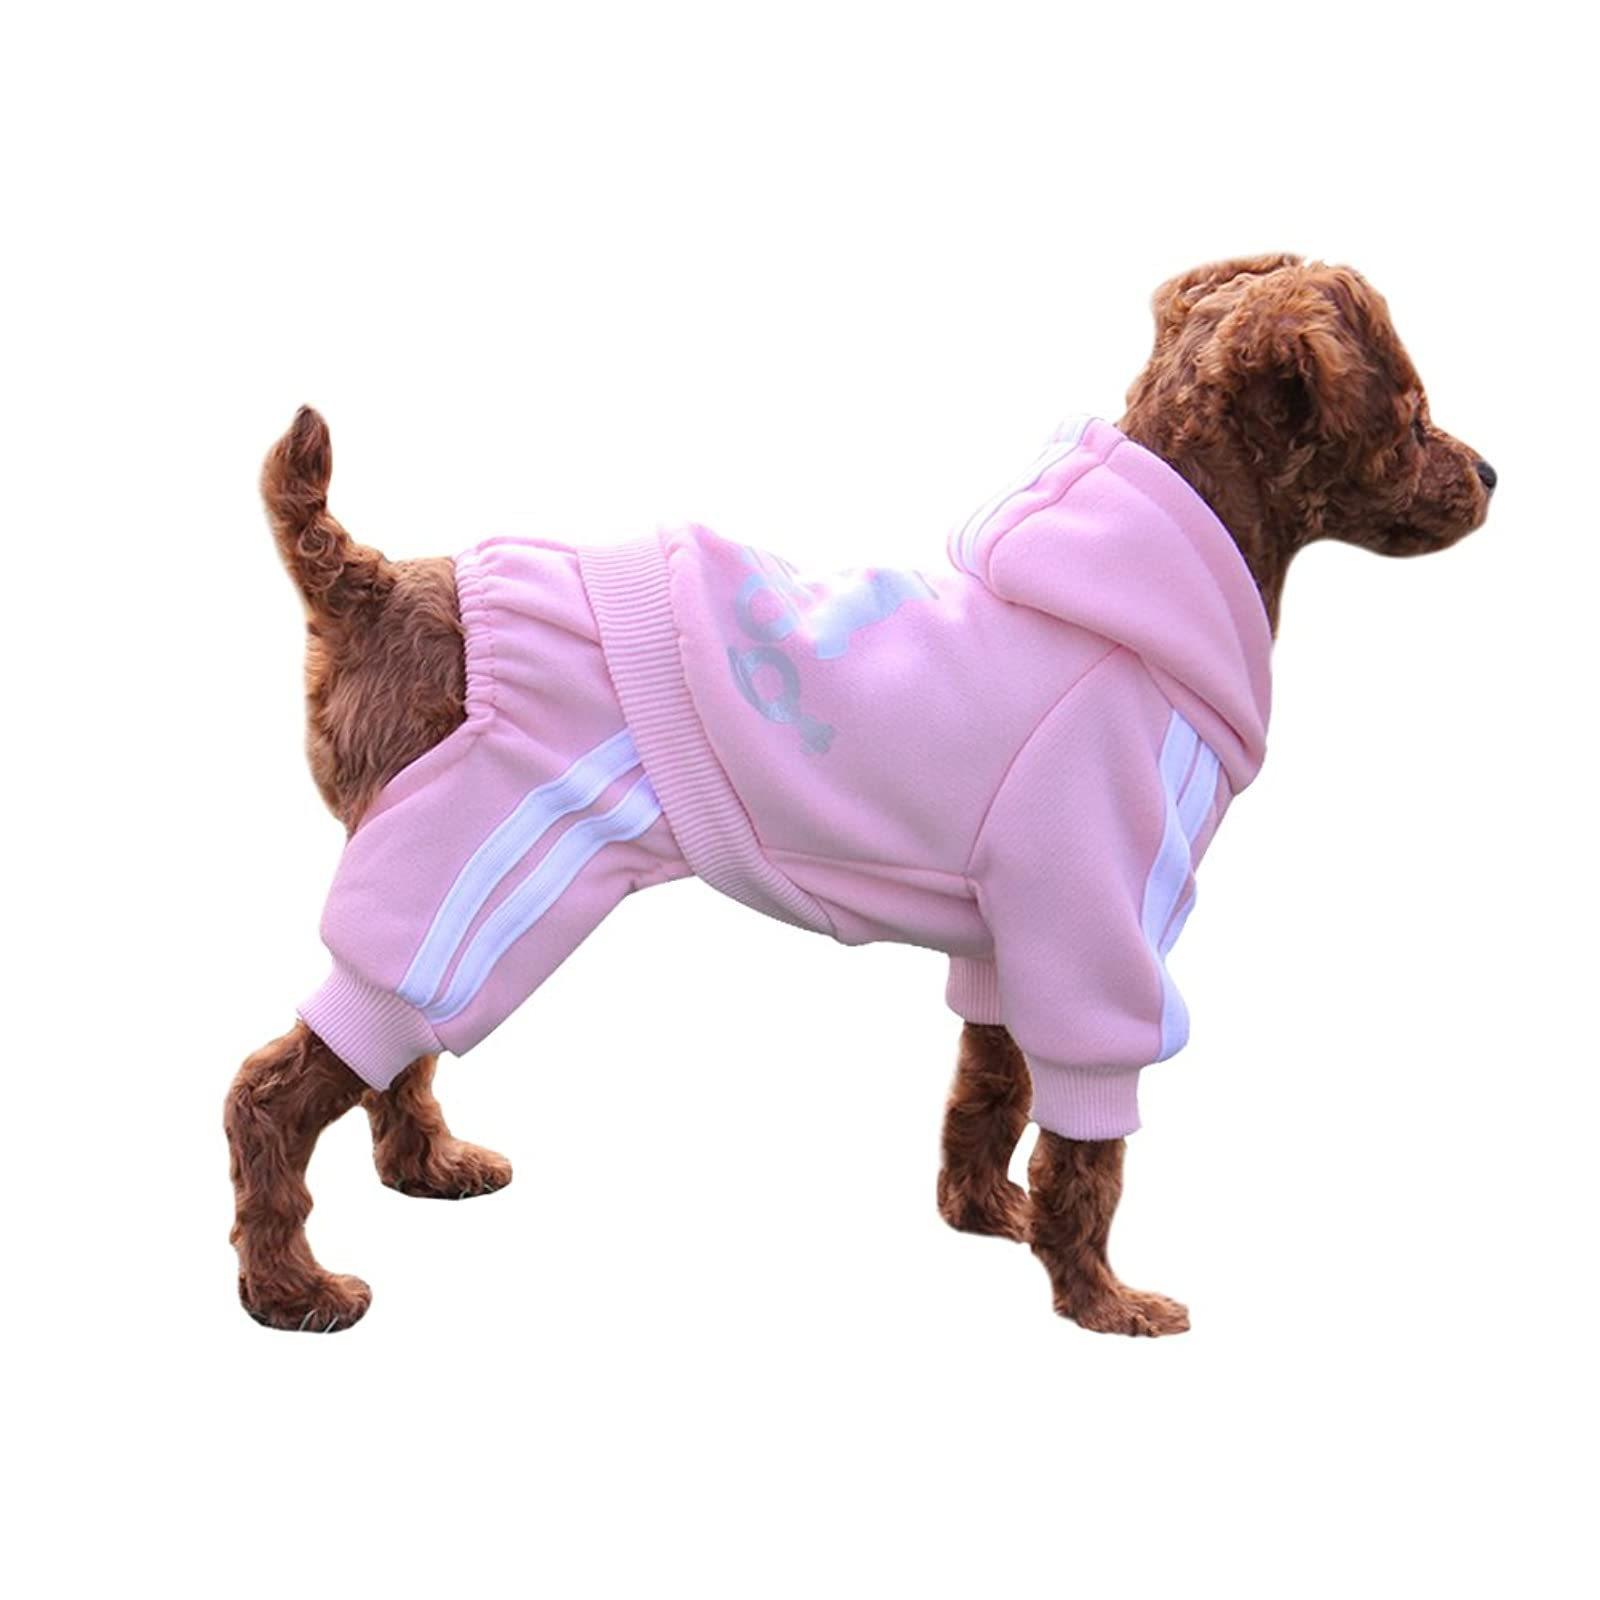 EastCities Winter Puppy Hoodie Small Dogs Warm AD04 - 1